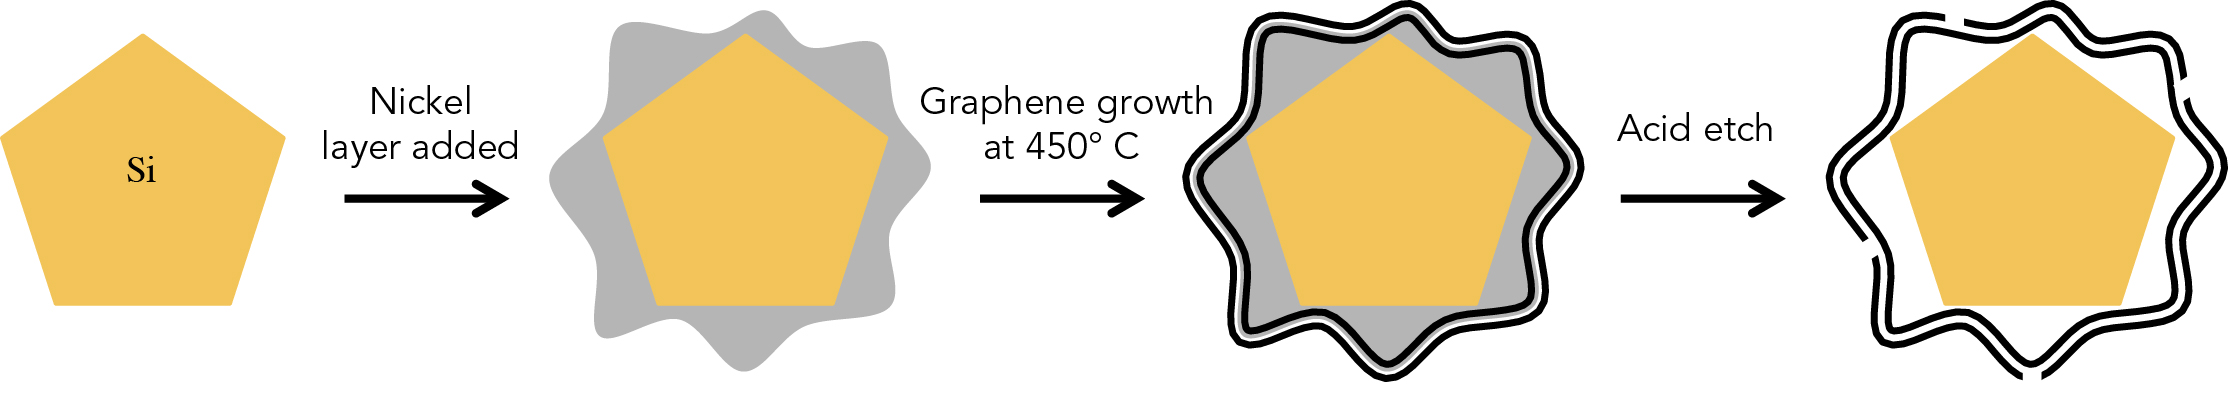 Silicon 'Sawdust' in a Graphene Cage Boosts Battery Performance figure